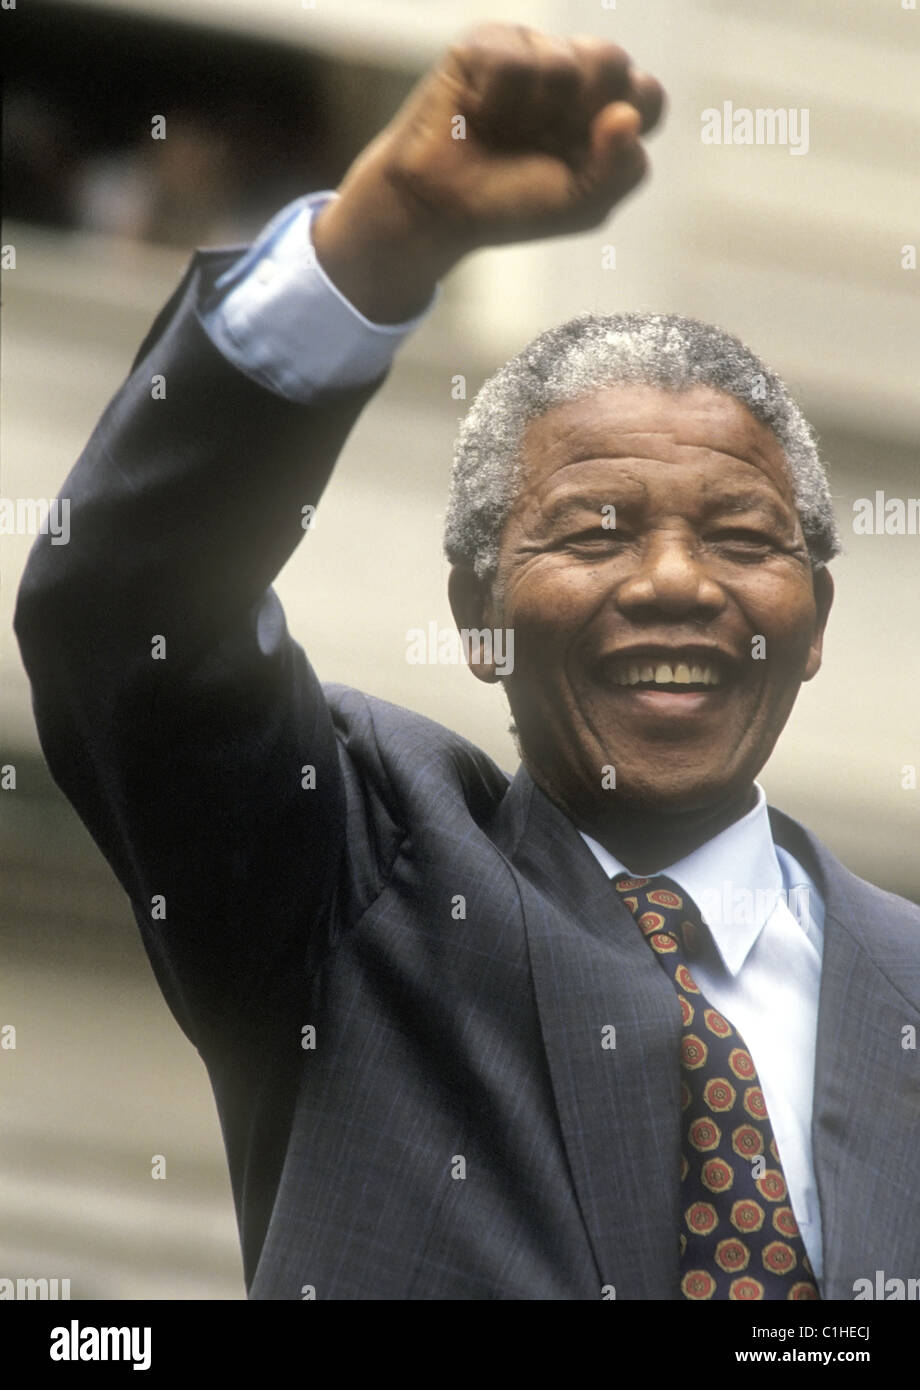 Nelson Mandela raises his fist to salute the crowd after delivering a speech to a rally, during his visit in New - Stock Image